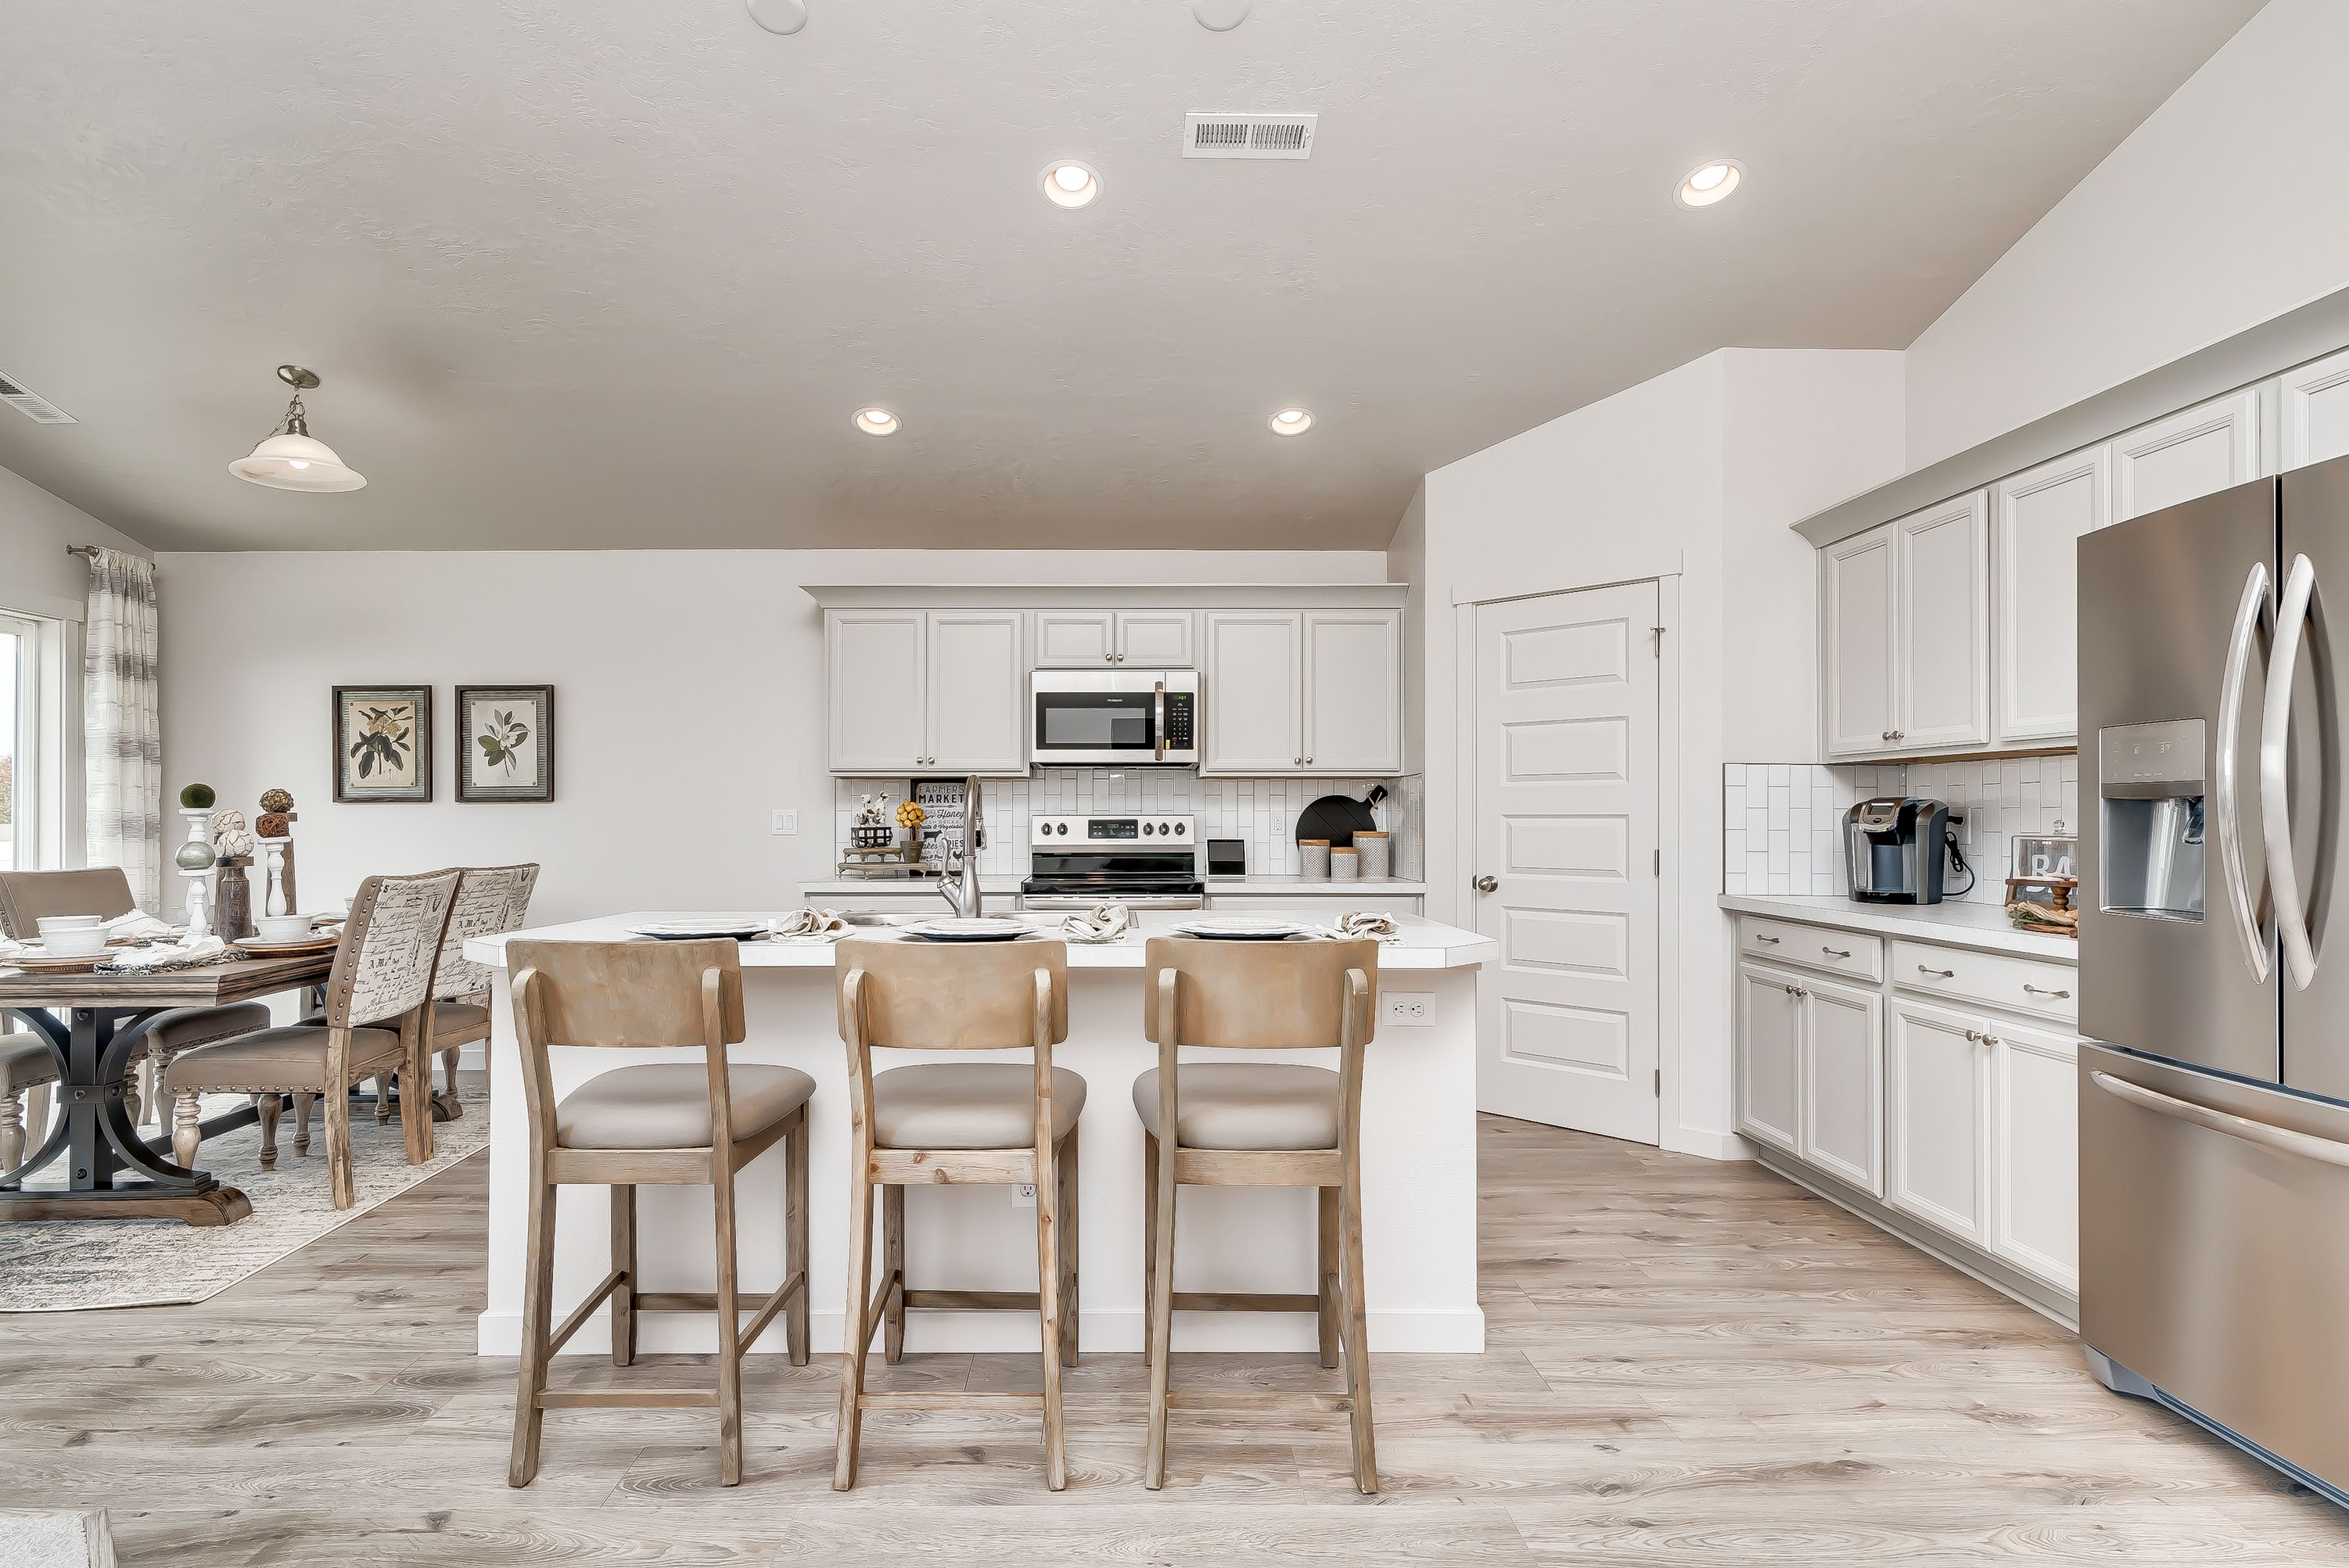 Hubble homes  brookfield plan is  beautifully designed split bedroom layout providing optimal living space also rh pinterest